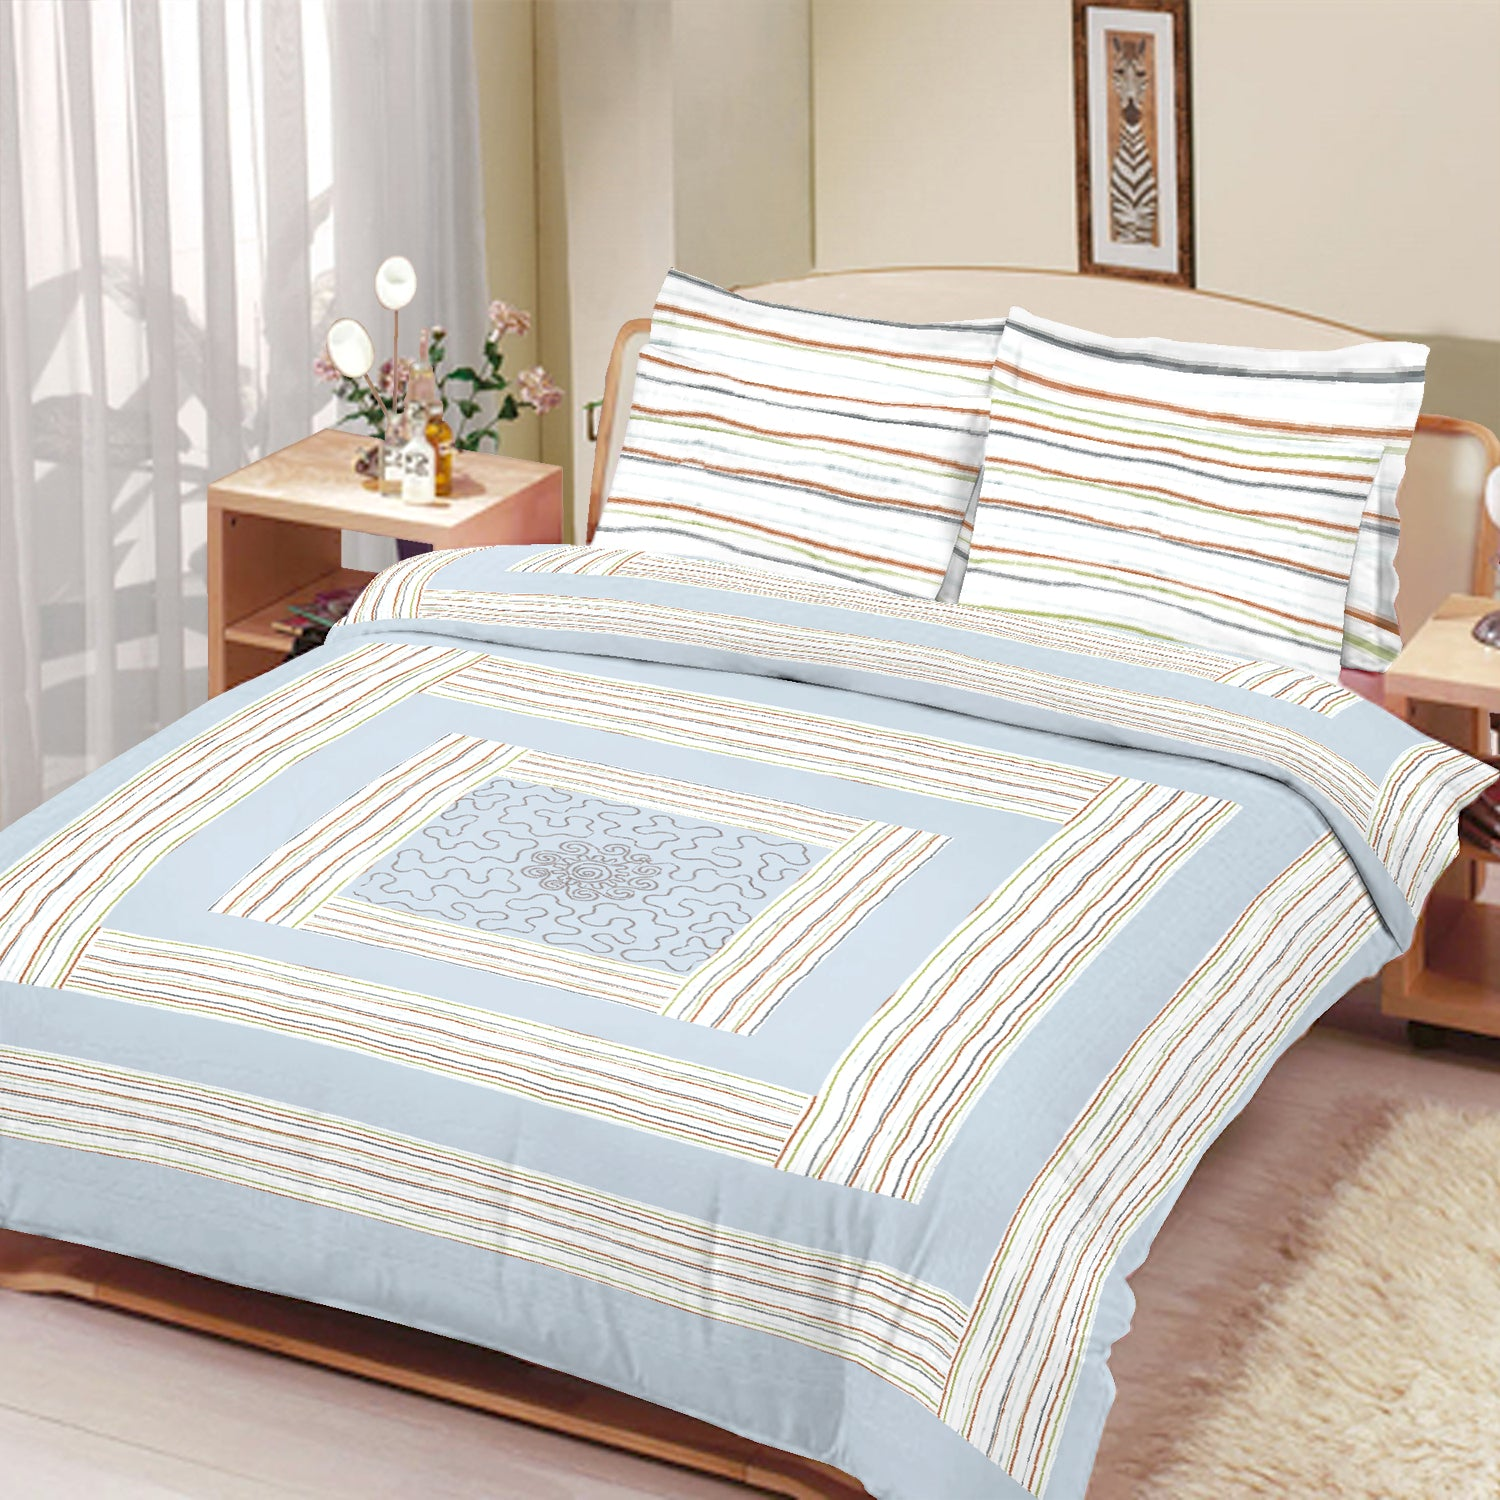 brandsego - Premium Quality Cotton Sutton Double Bed Sheet & Pillow Set-BE9167